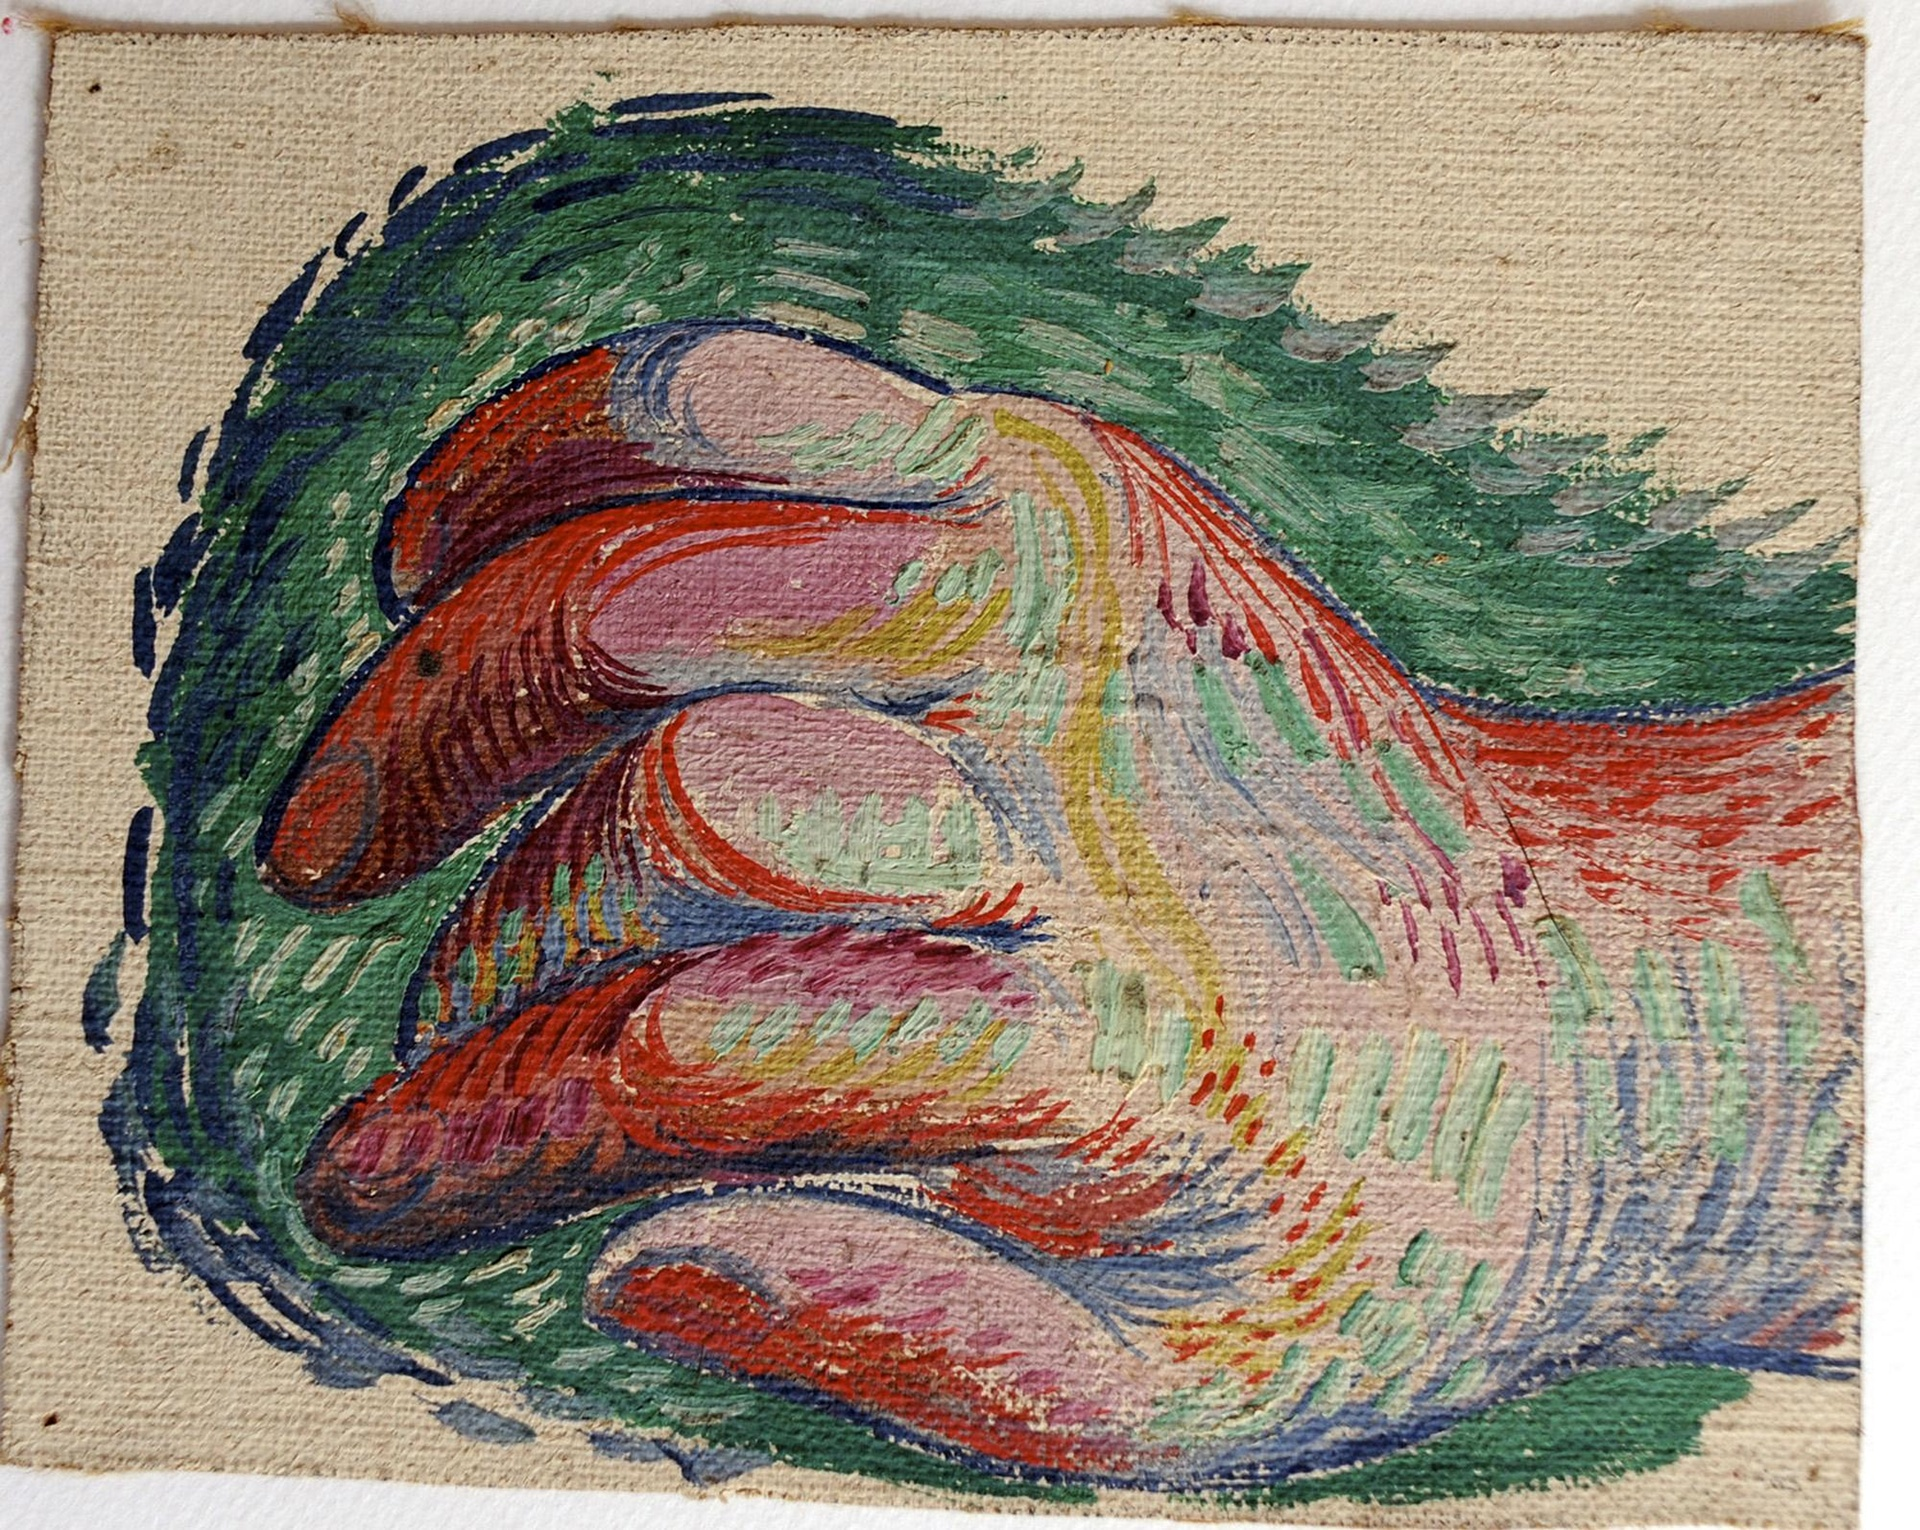 The history blog blog archive retired electrician for Watercolor paintings of hands